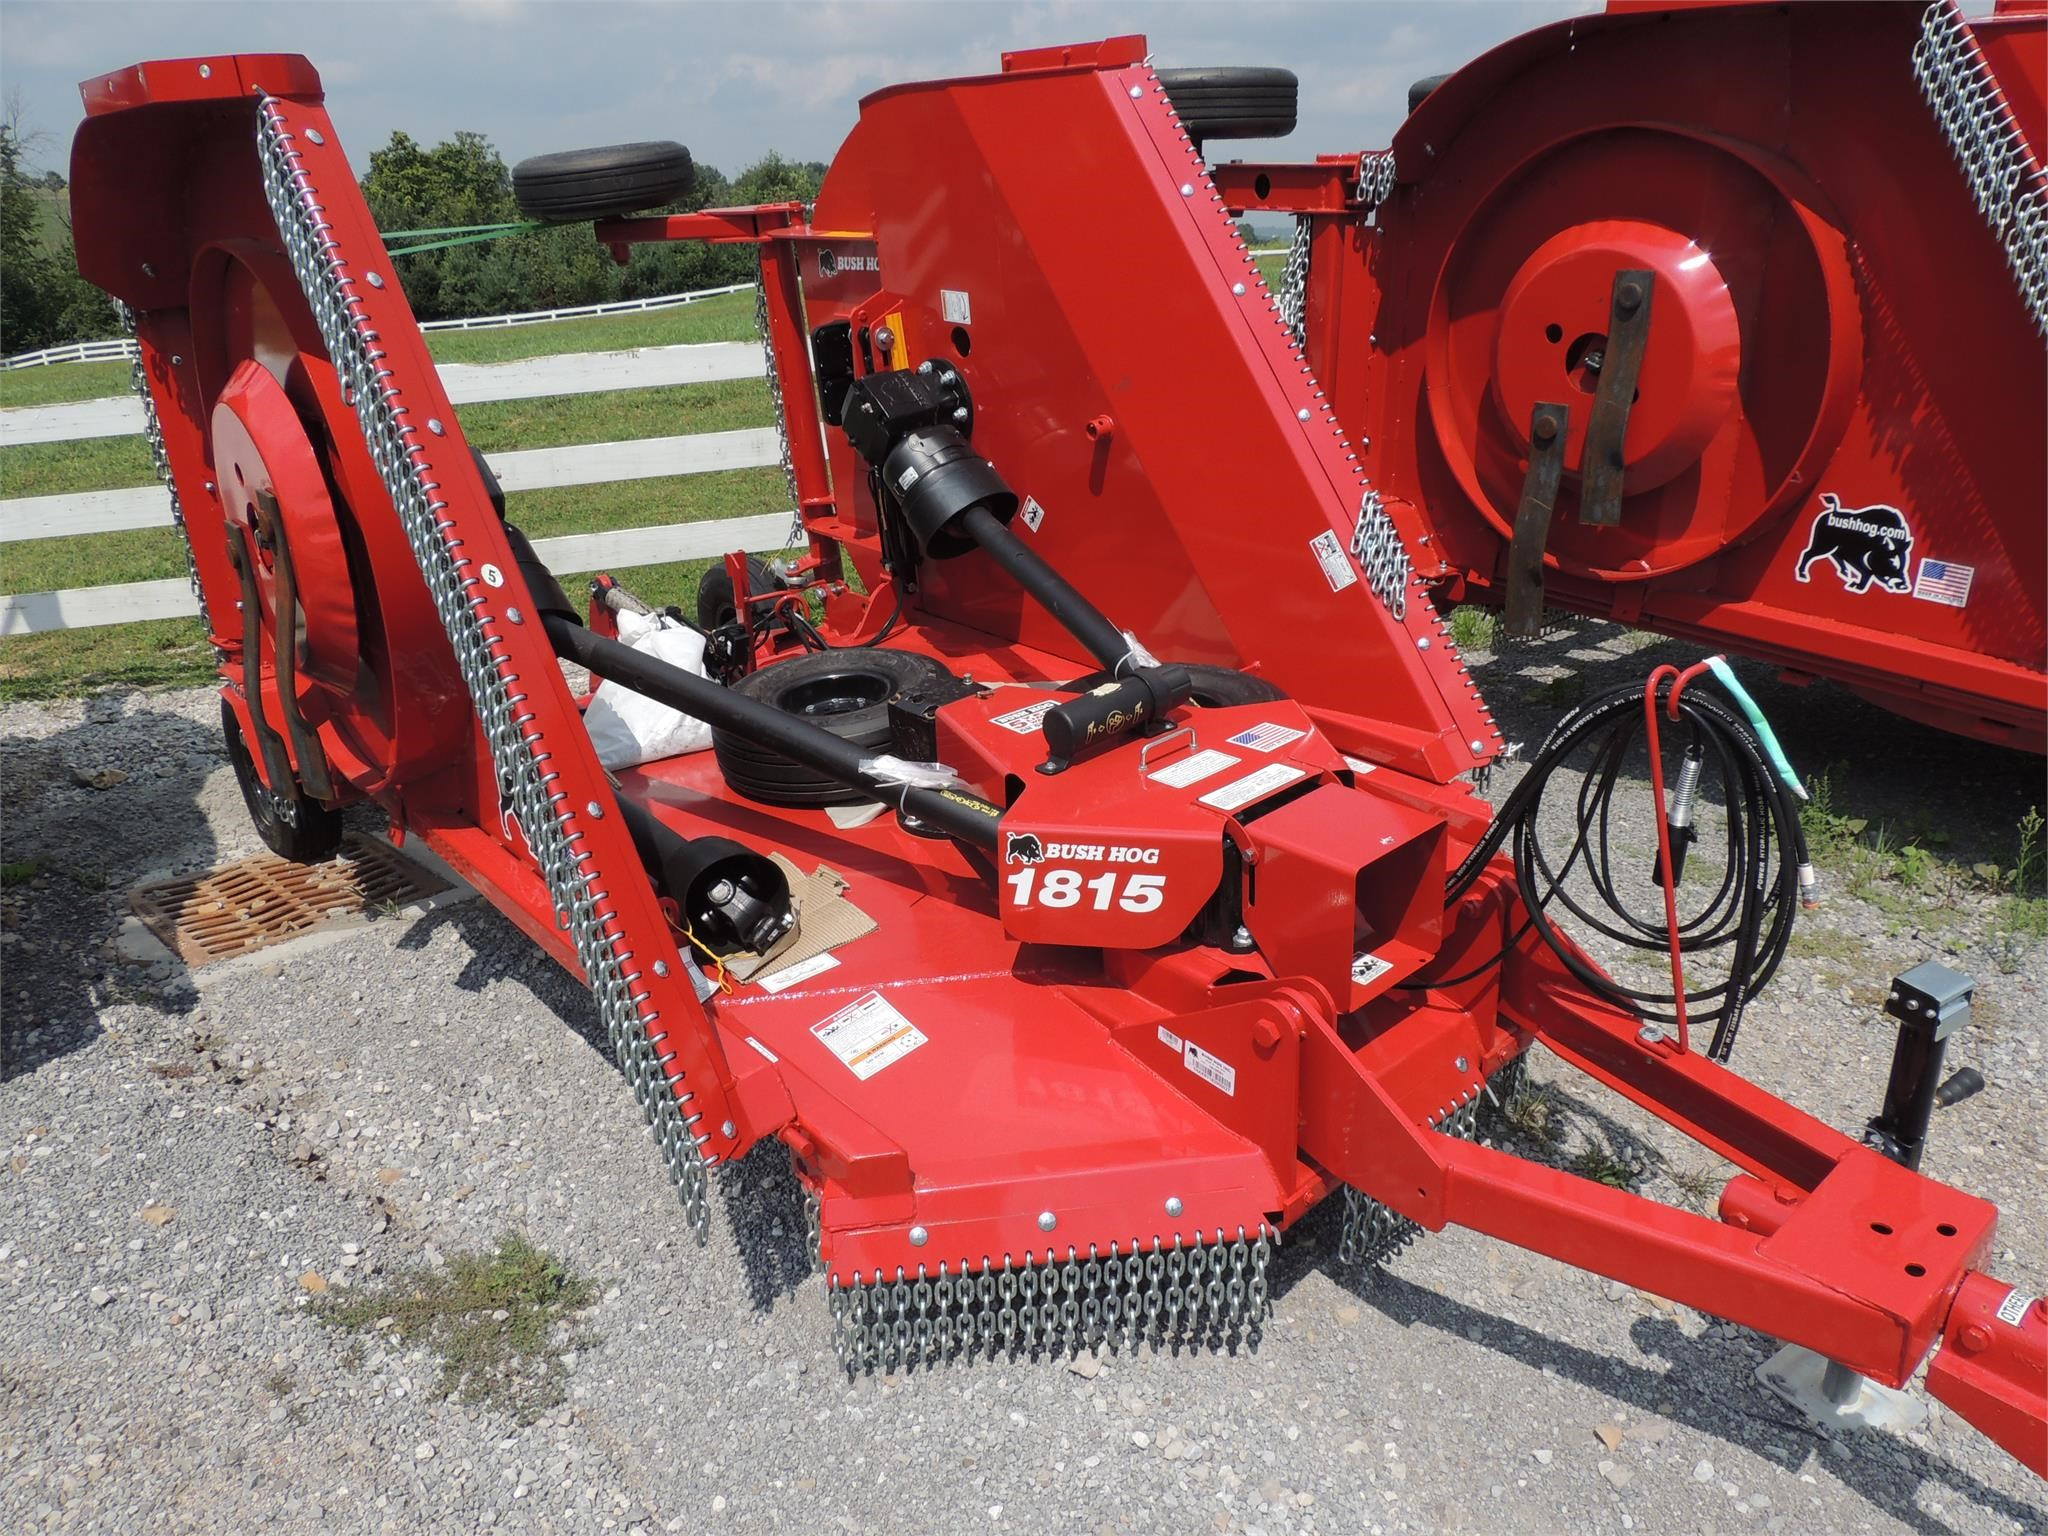 2020 Bush Hog 1815 Rotary Cutter